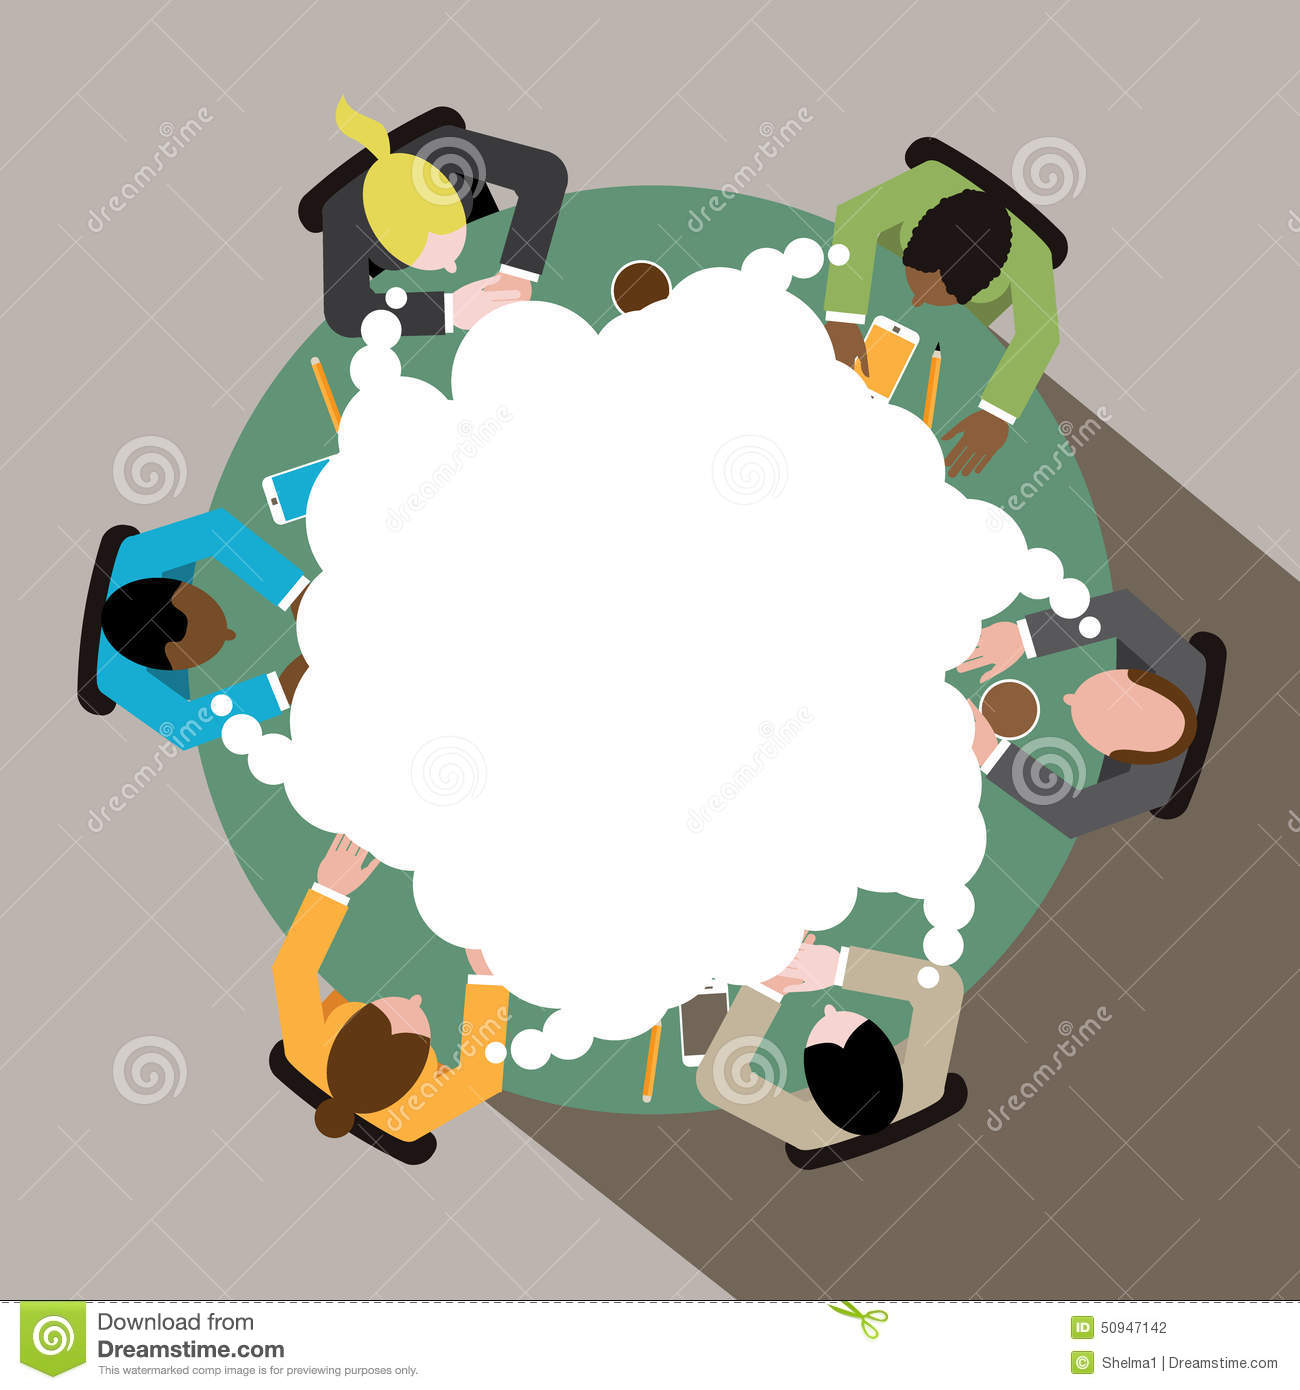 Clipart Picture Of Women Together Conference Table.